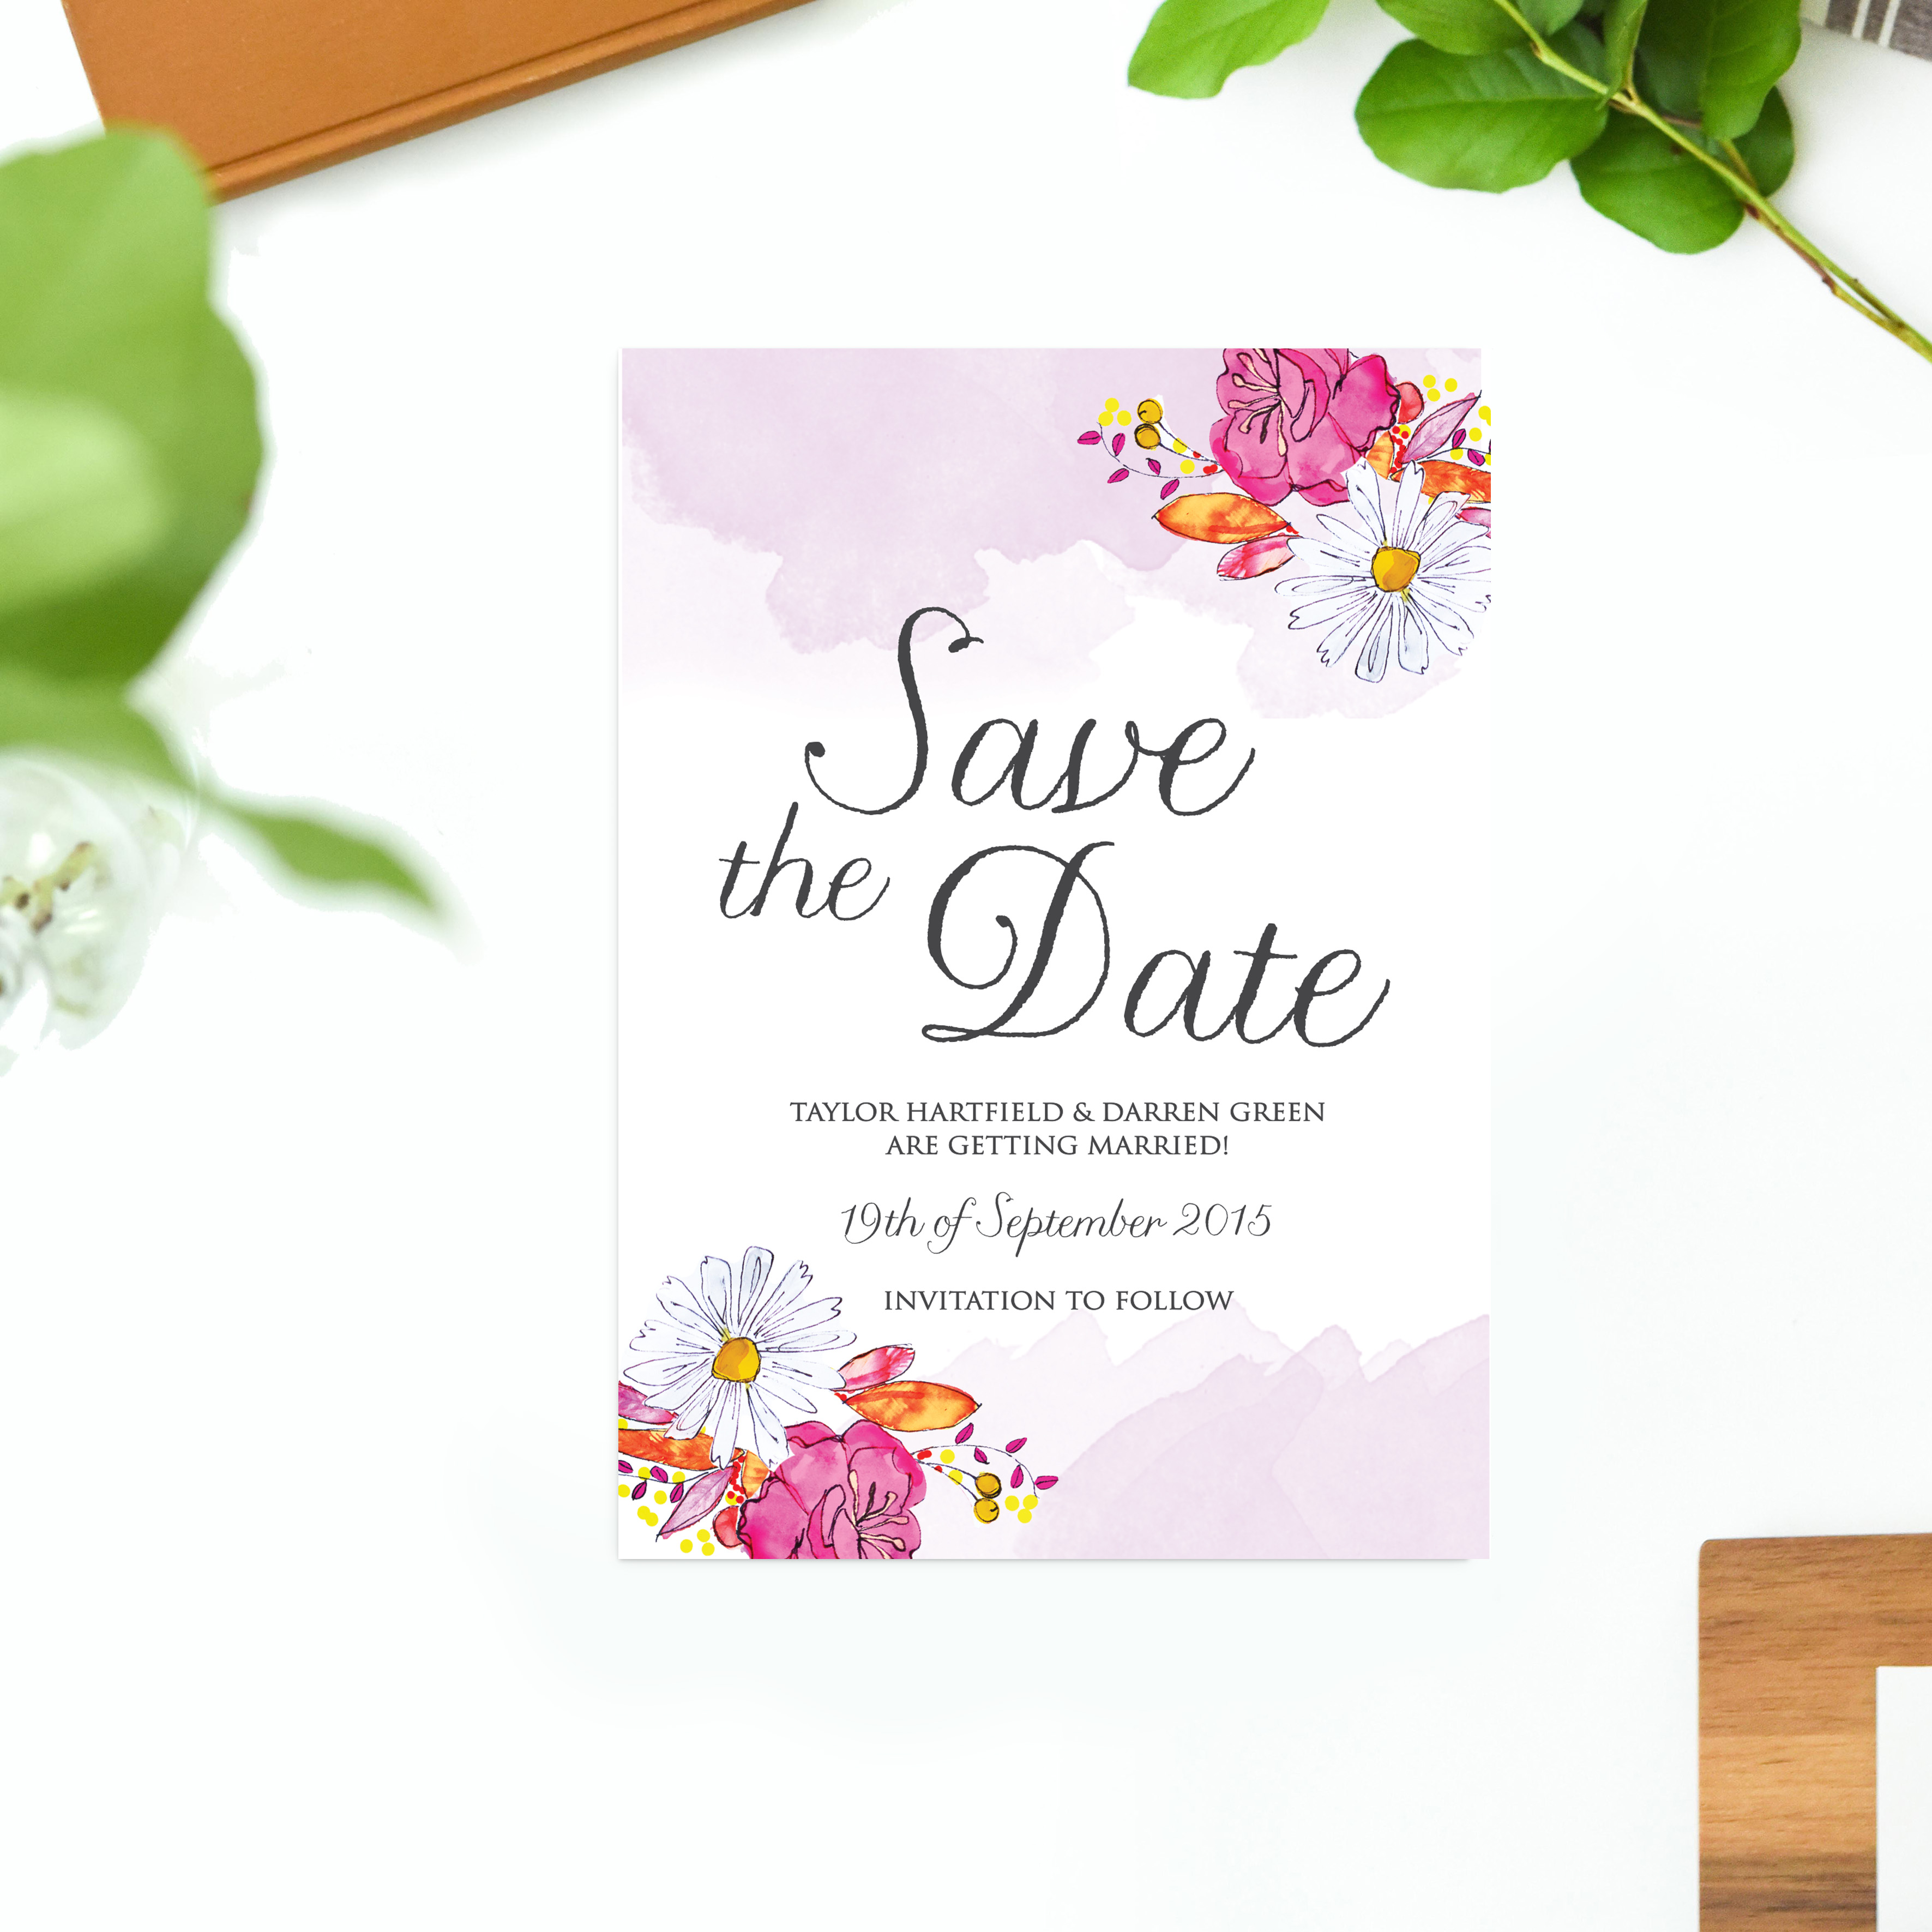 Watercolour flower wedding invitations sail and swan watercolour flower wedding invitations australia wedding stationery sydney perth brisbane melbourne adelaide sail and swan stopboris Image collections